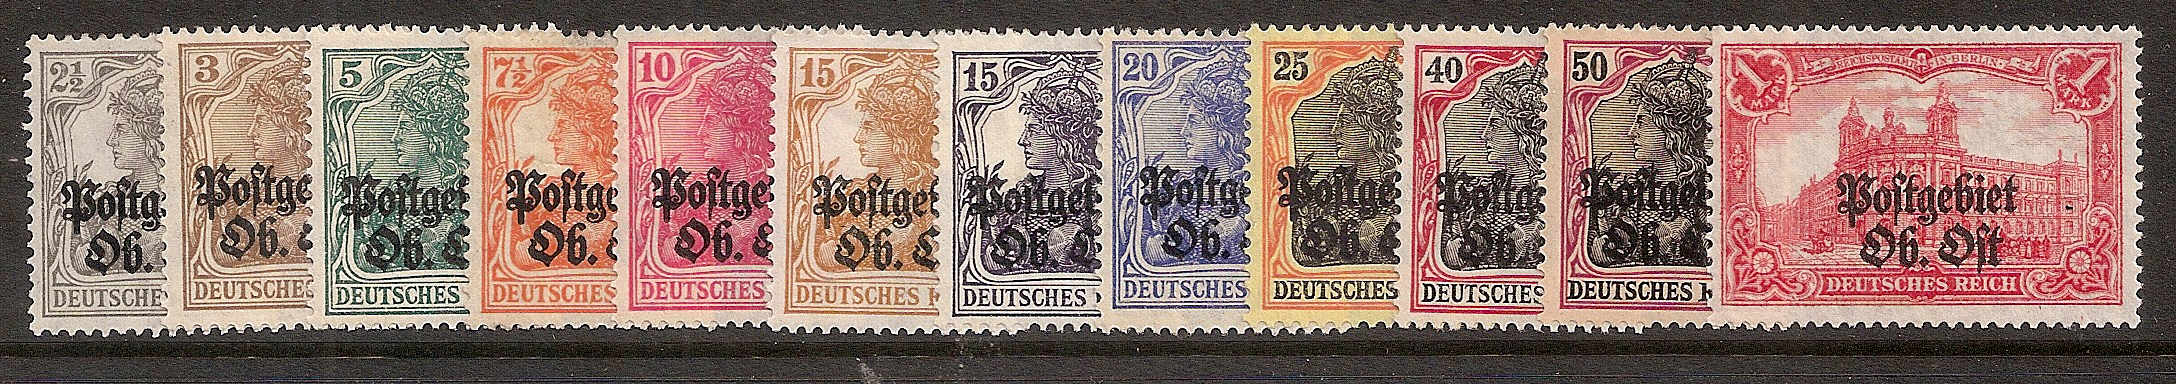 Russia Stamps-German Occupation WW1 German Occupation WW1 Scott N1-12